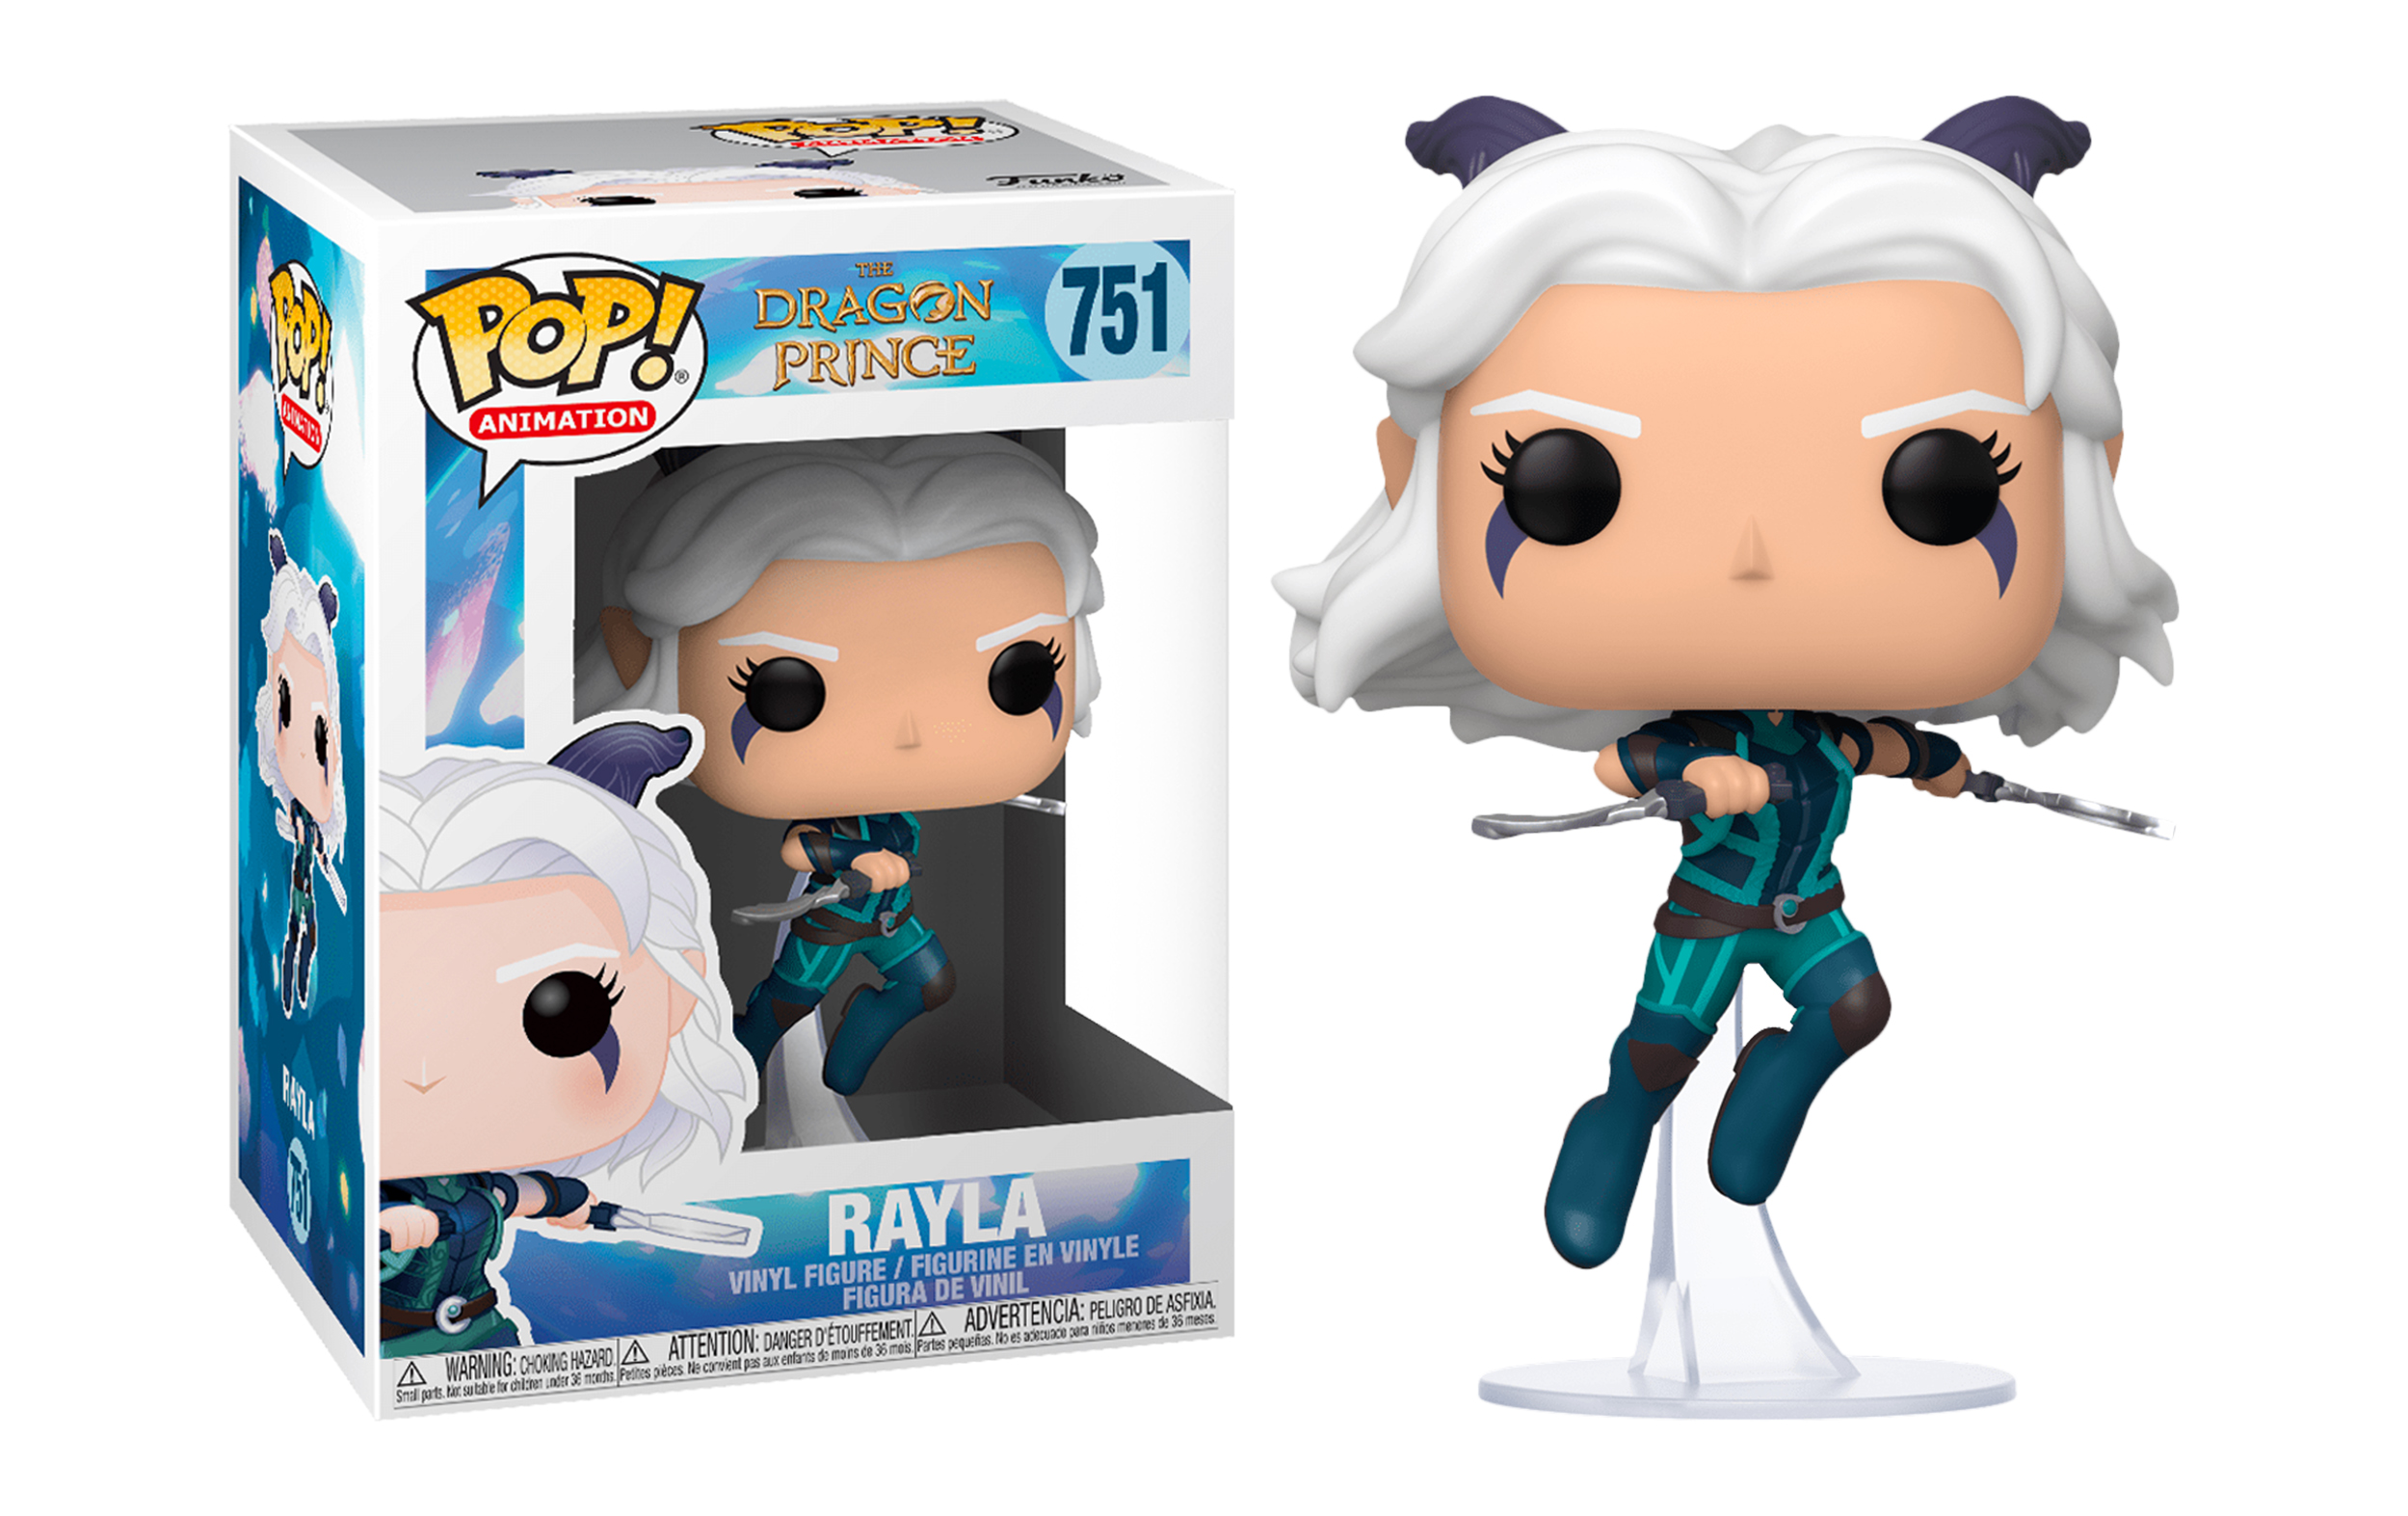 Dragon Prince Rayla 751 Funko POP Vinyl Figure